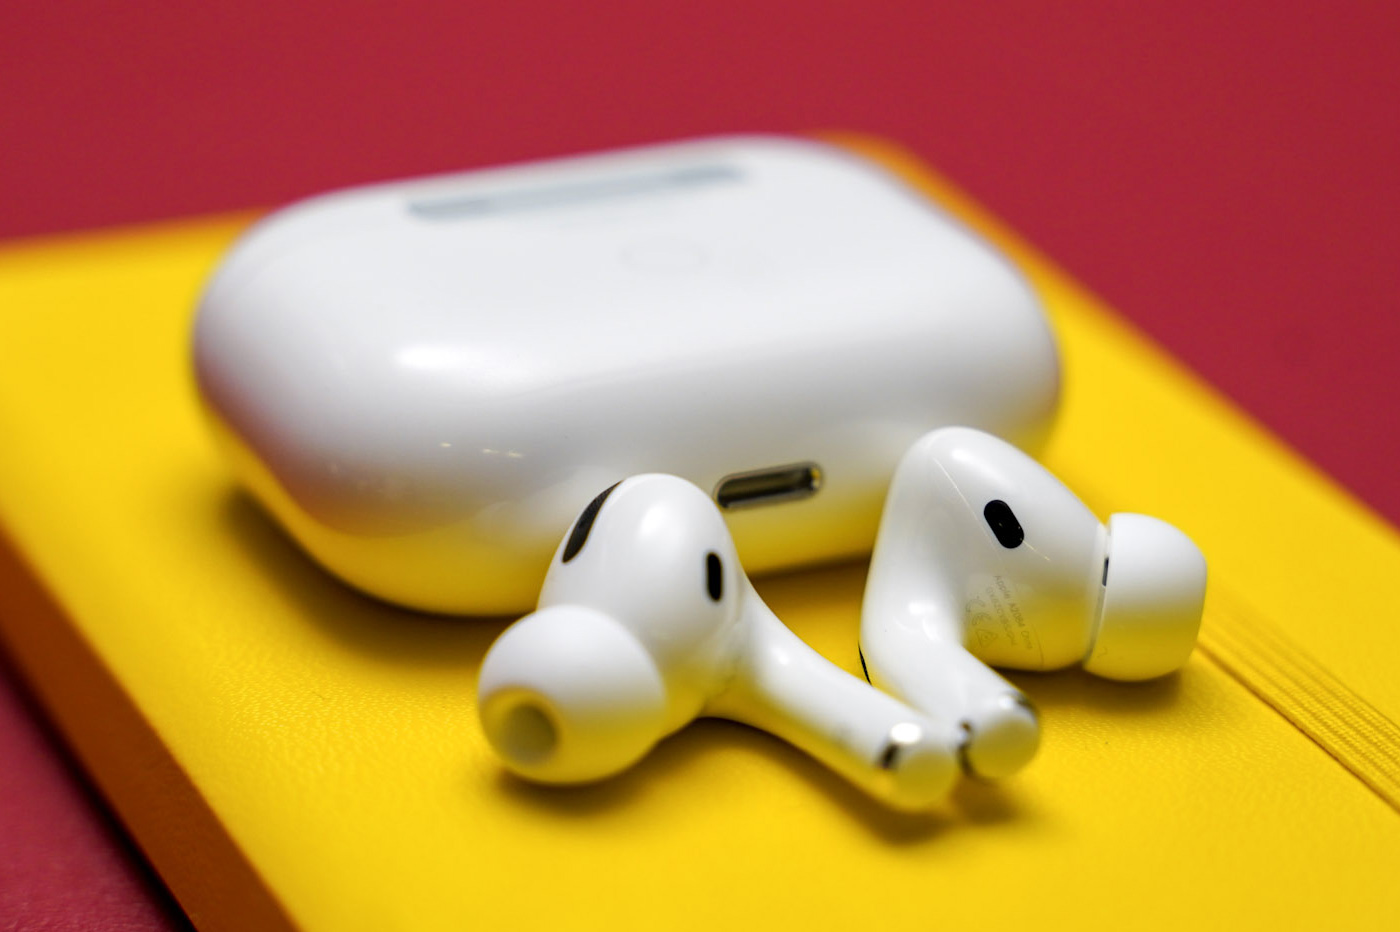 Embouts AirPods Pro